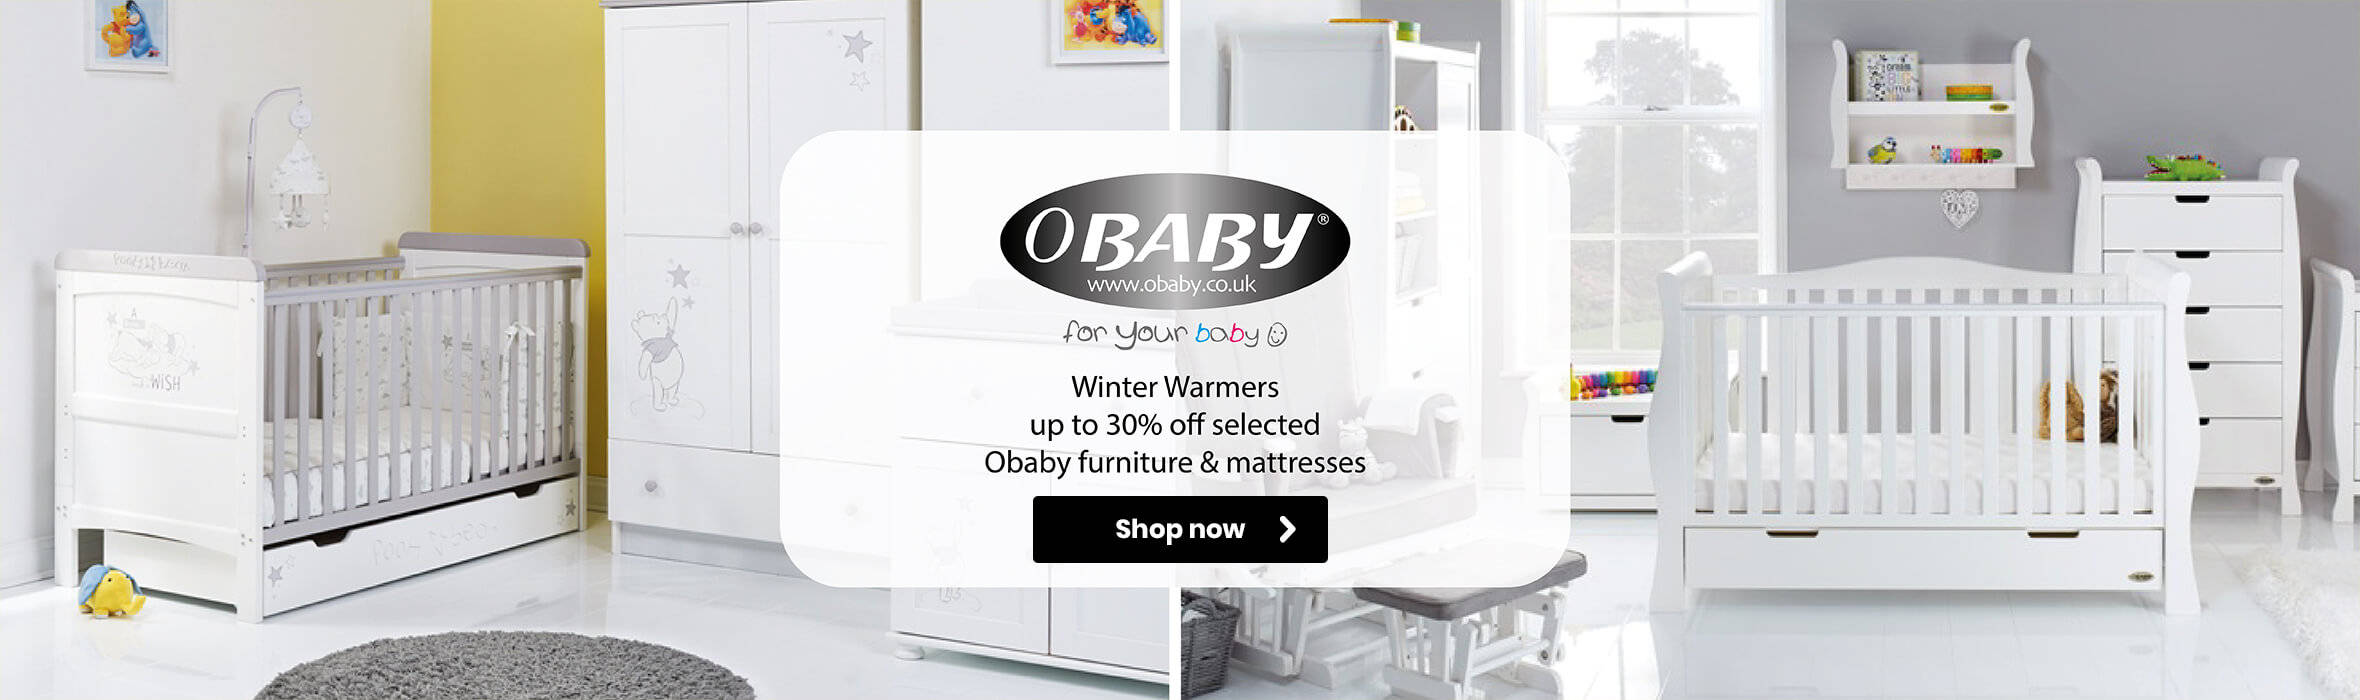 Up to 30% off Obaby winter warmers!